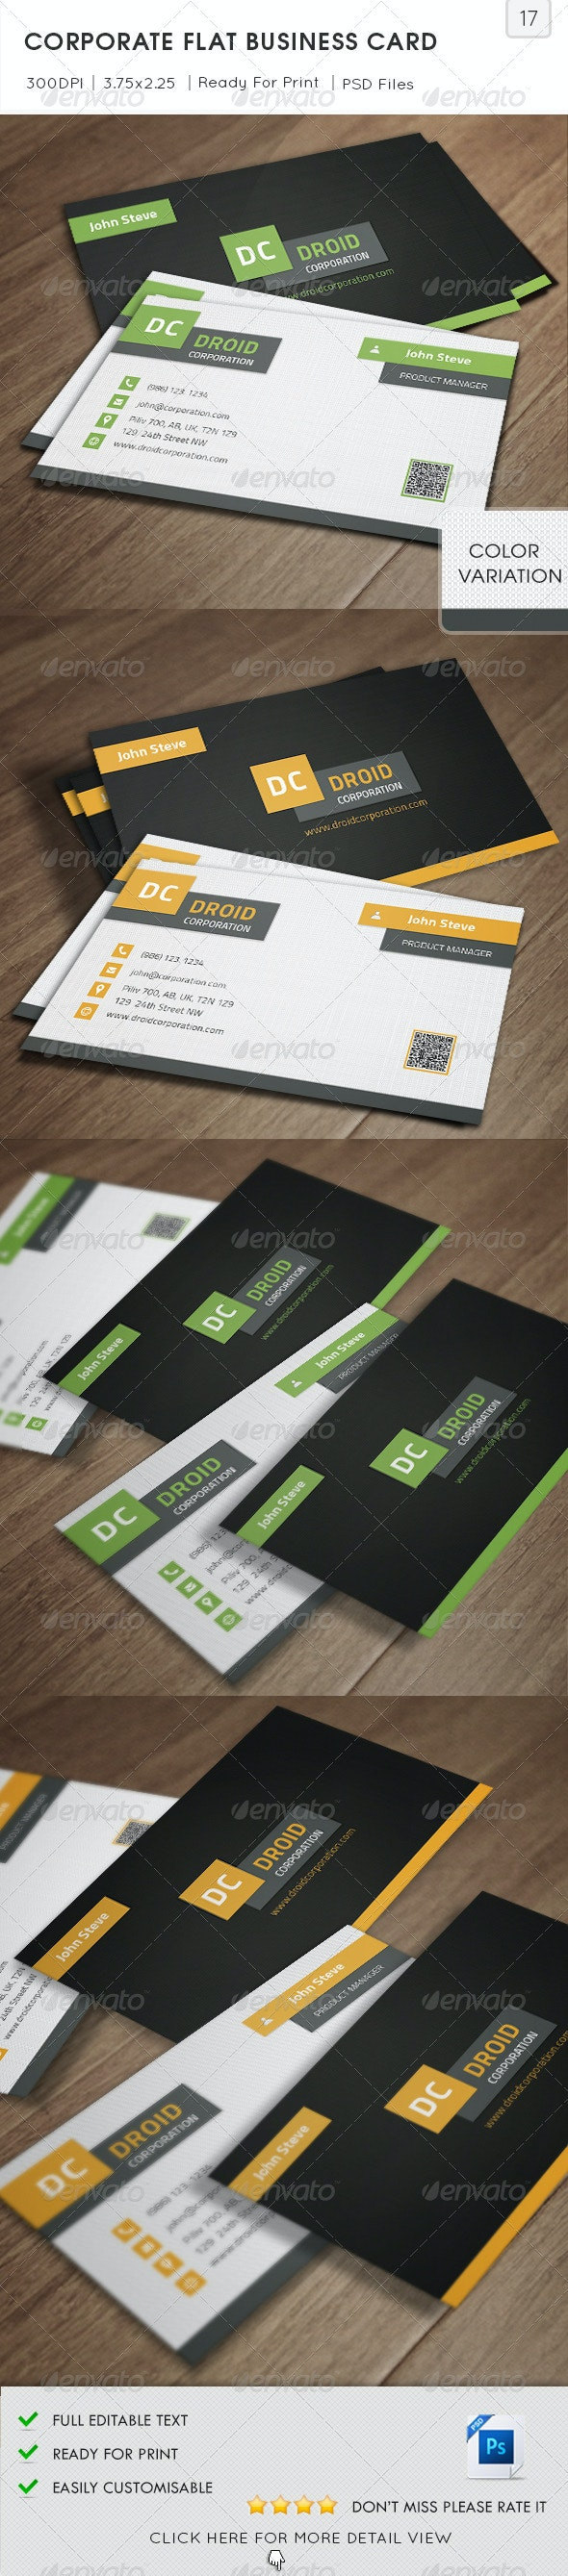 Corporate Flat Business Card v17 - Corporate Business Cards